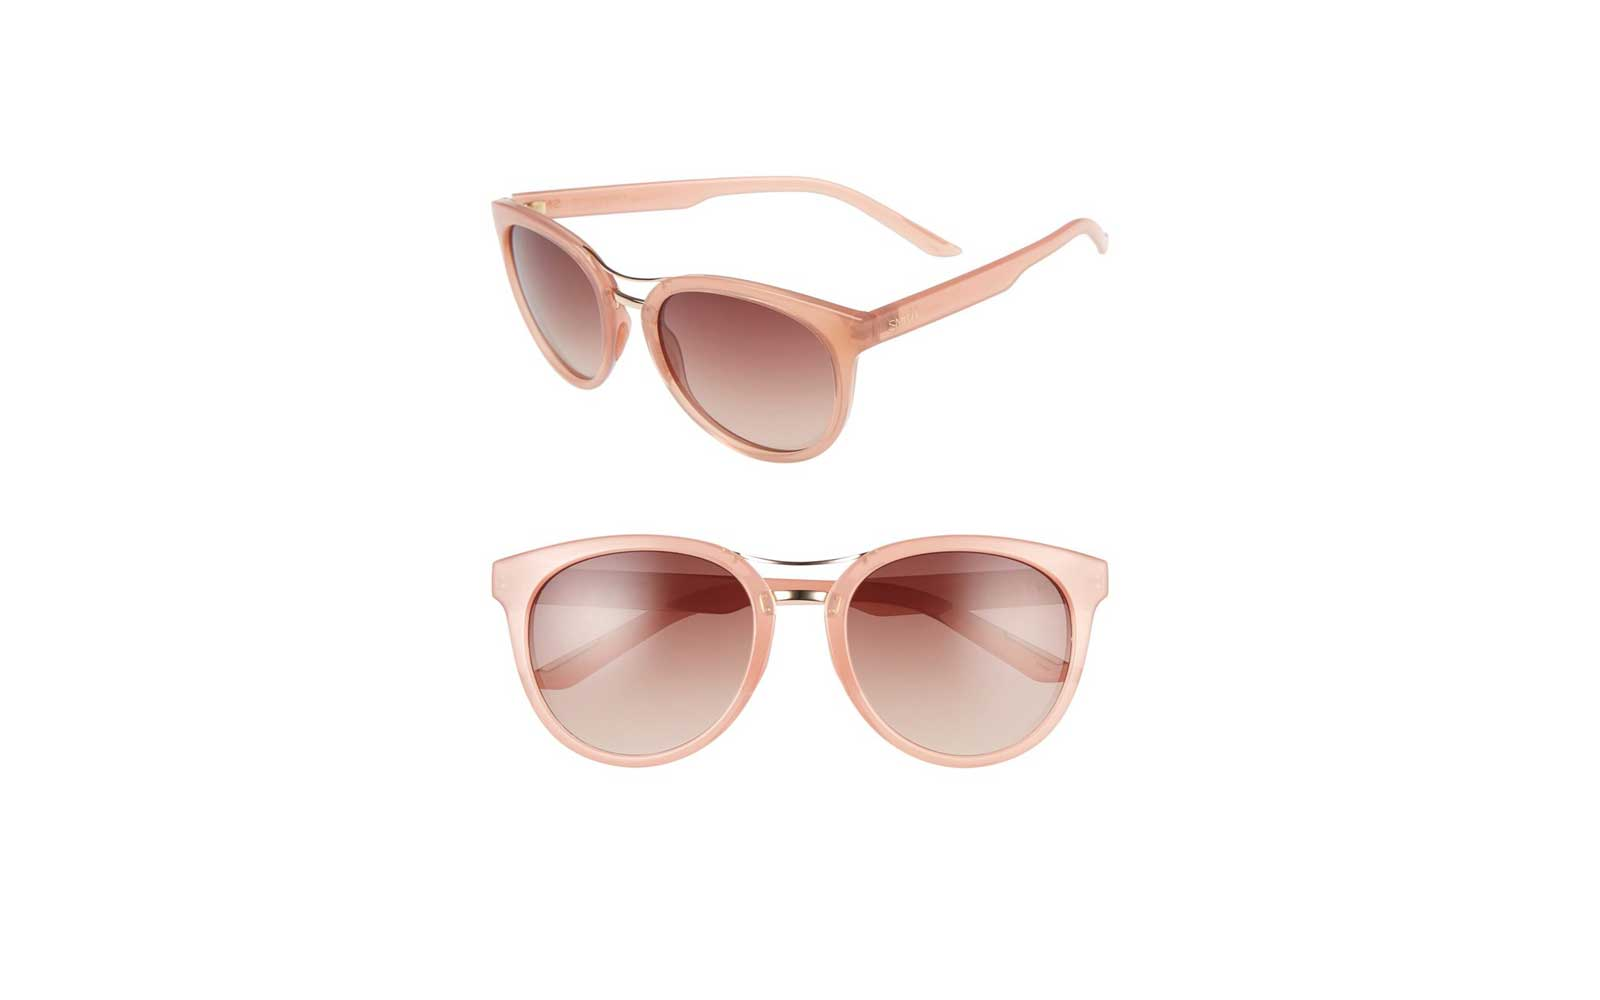 Smith Optics 'Bridgetown' Sunglasses in Blush